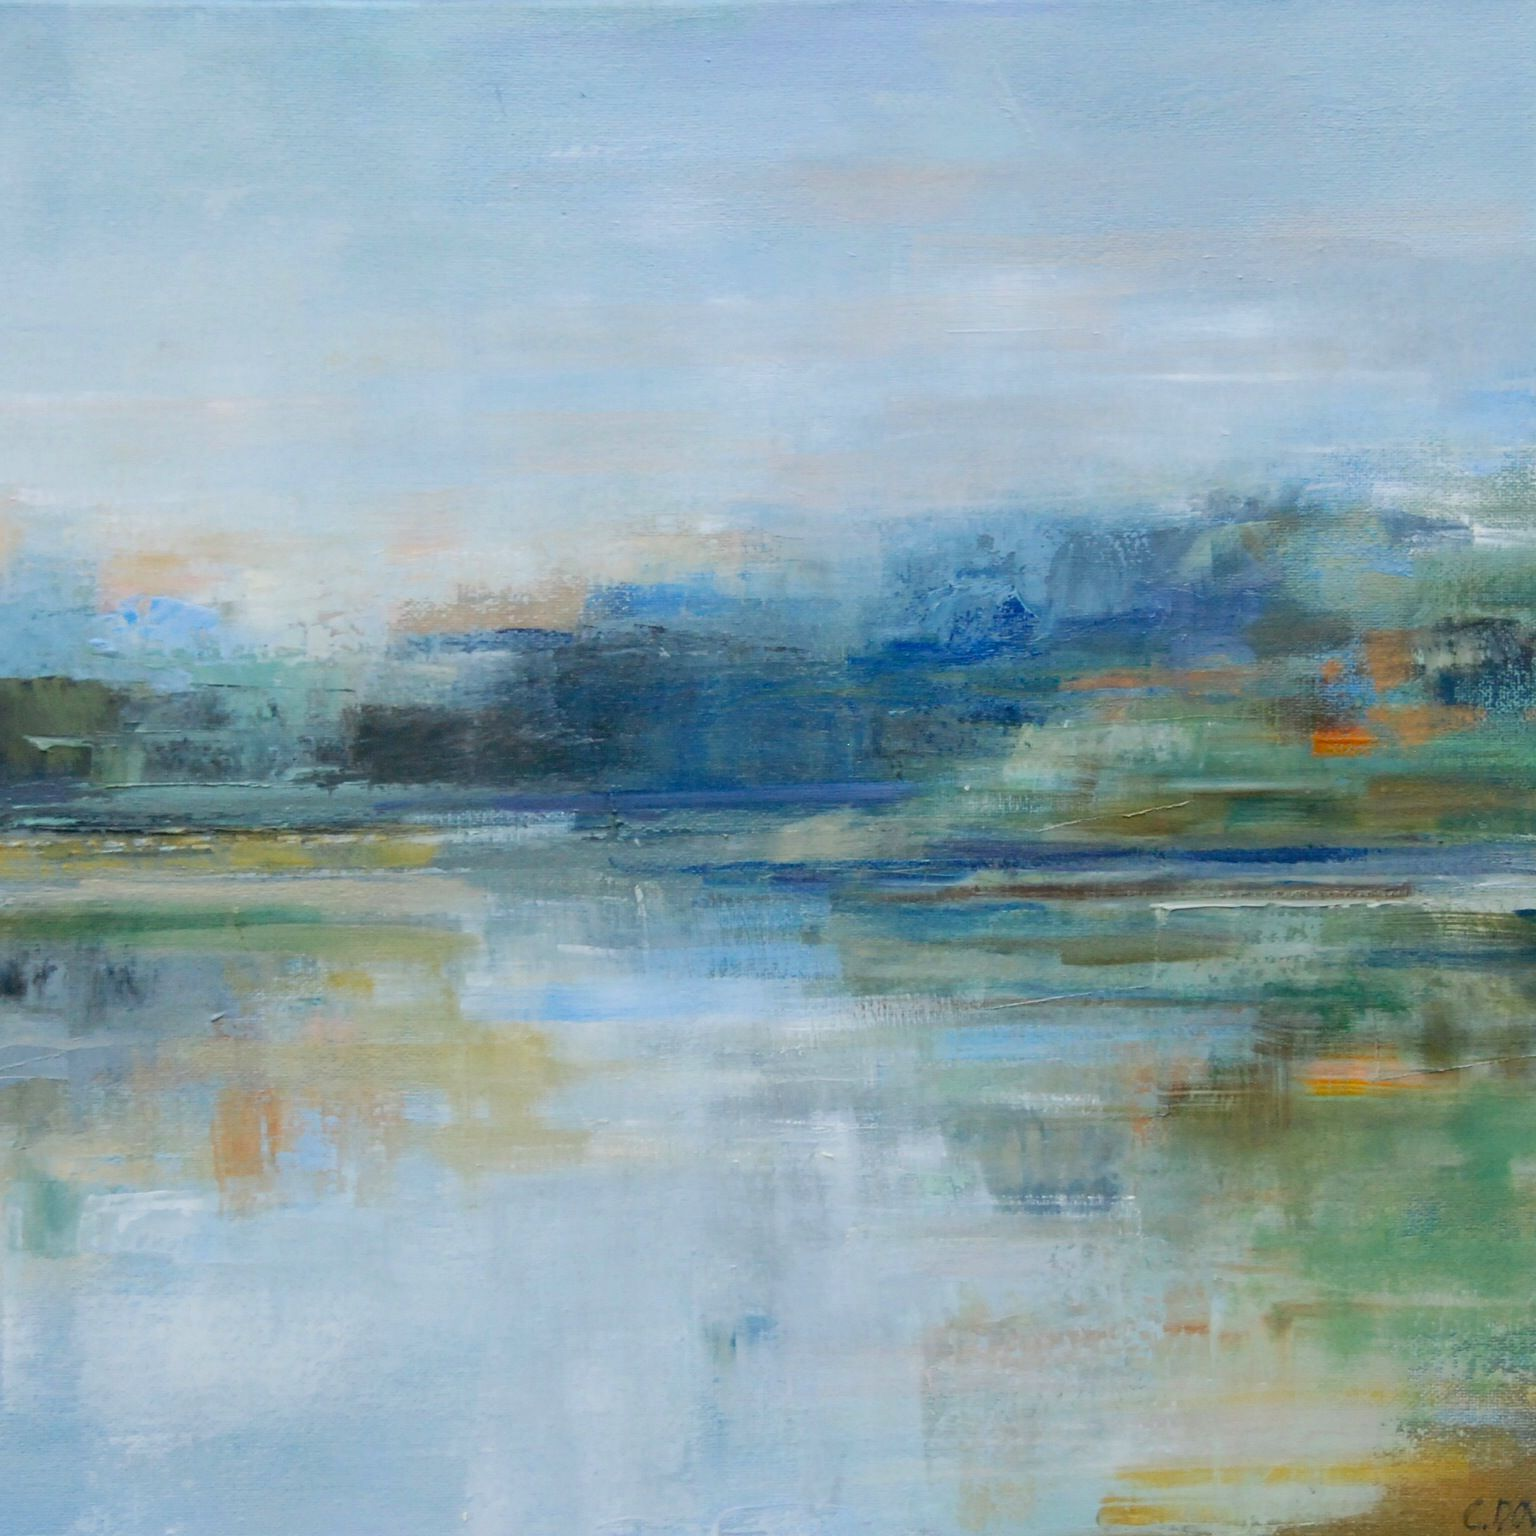 Breaking Dawn Christina Dowdy Landscape Art Abstract Abstract Landscape Contemporary Modern Art Abstract Art Landscape Contemporary Abstract Art Abstract